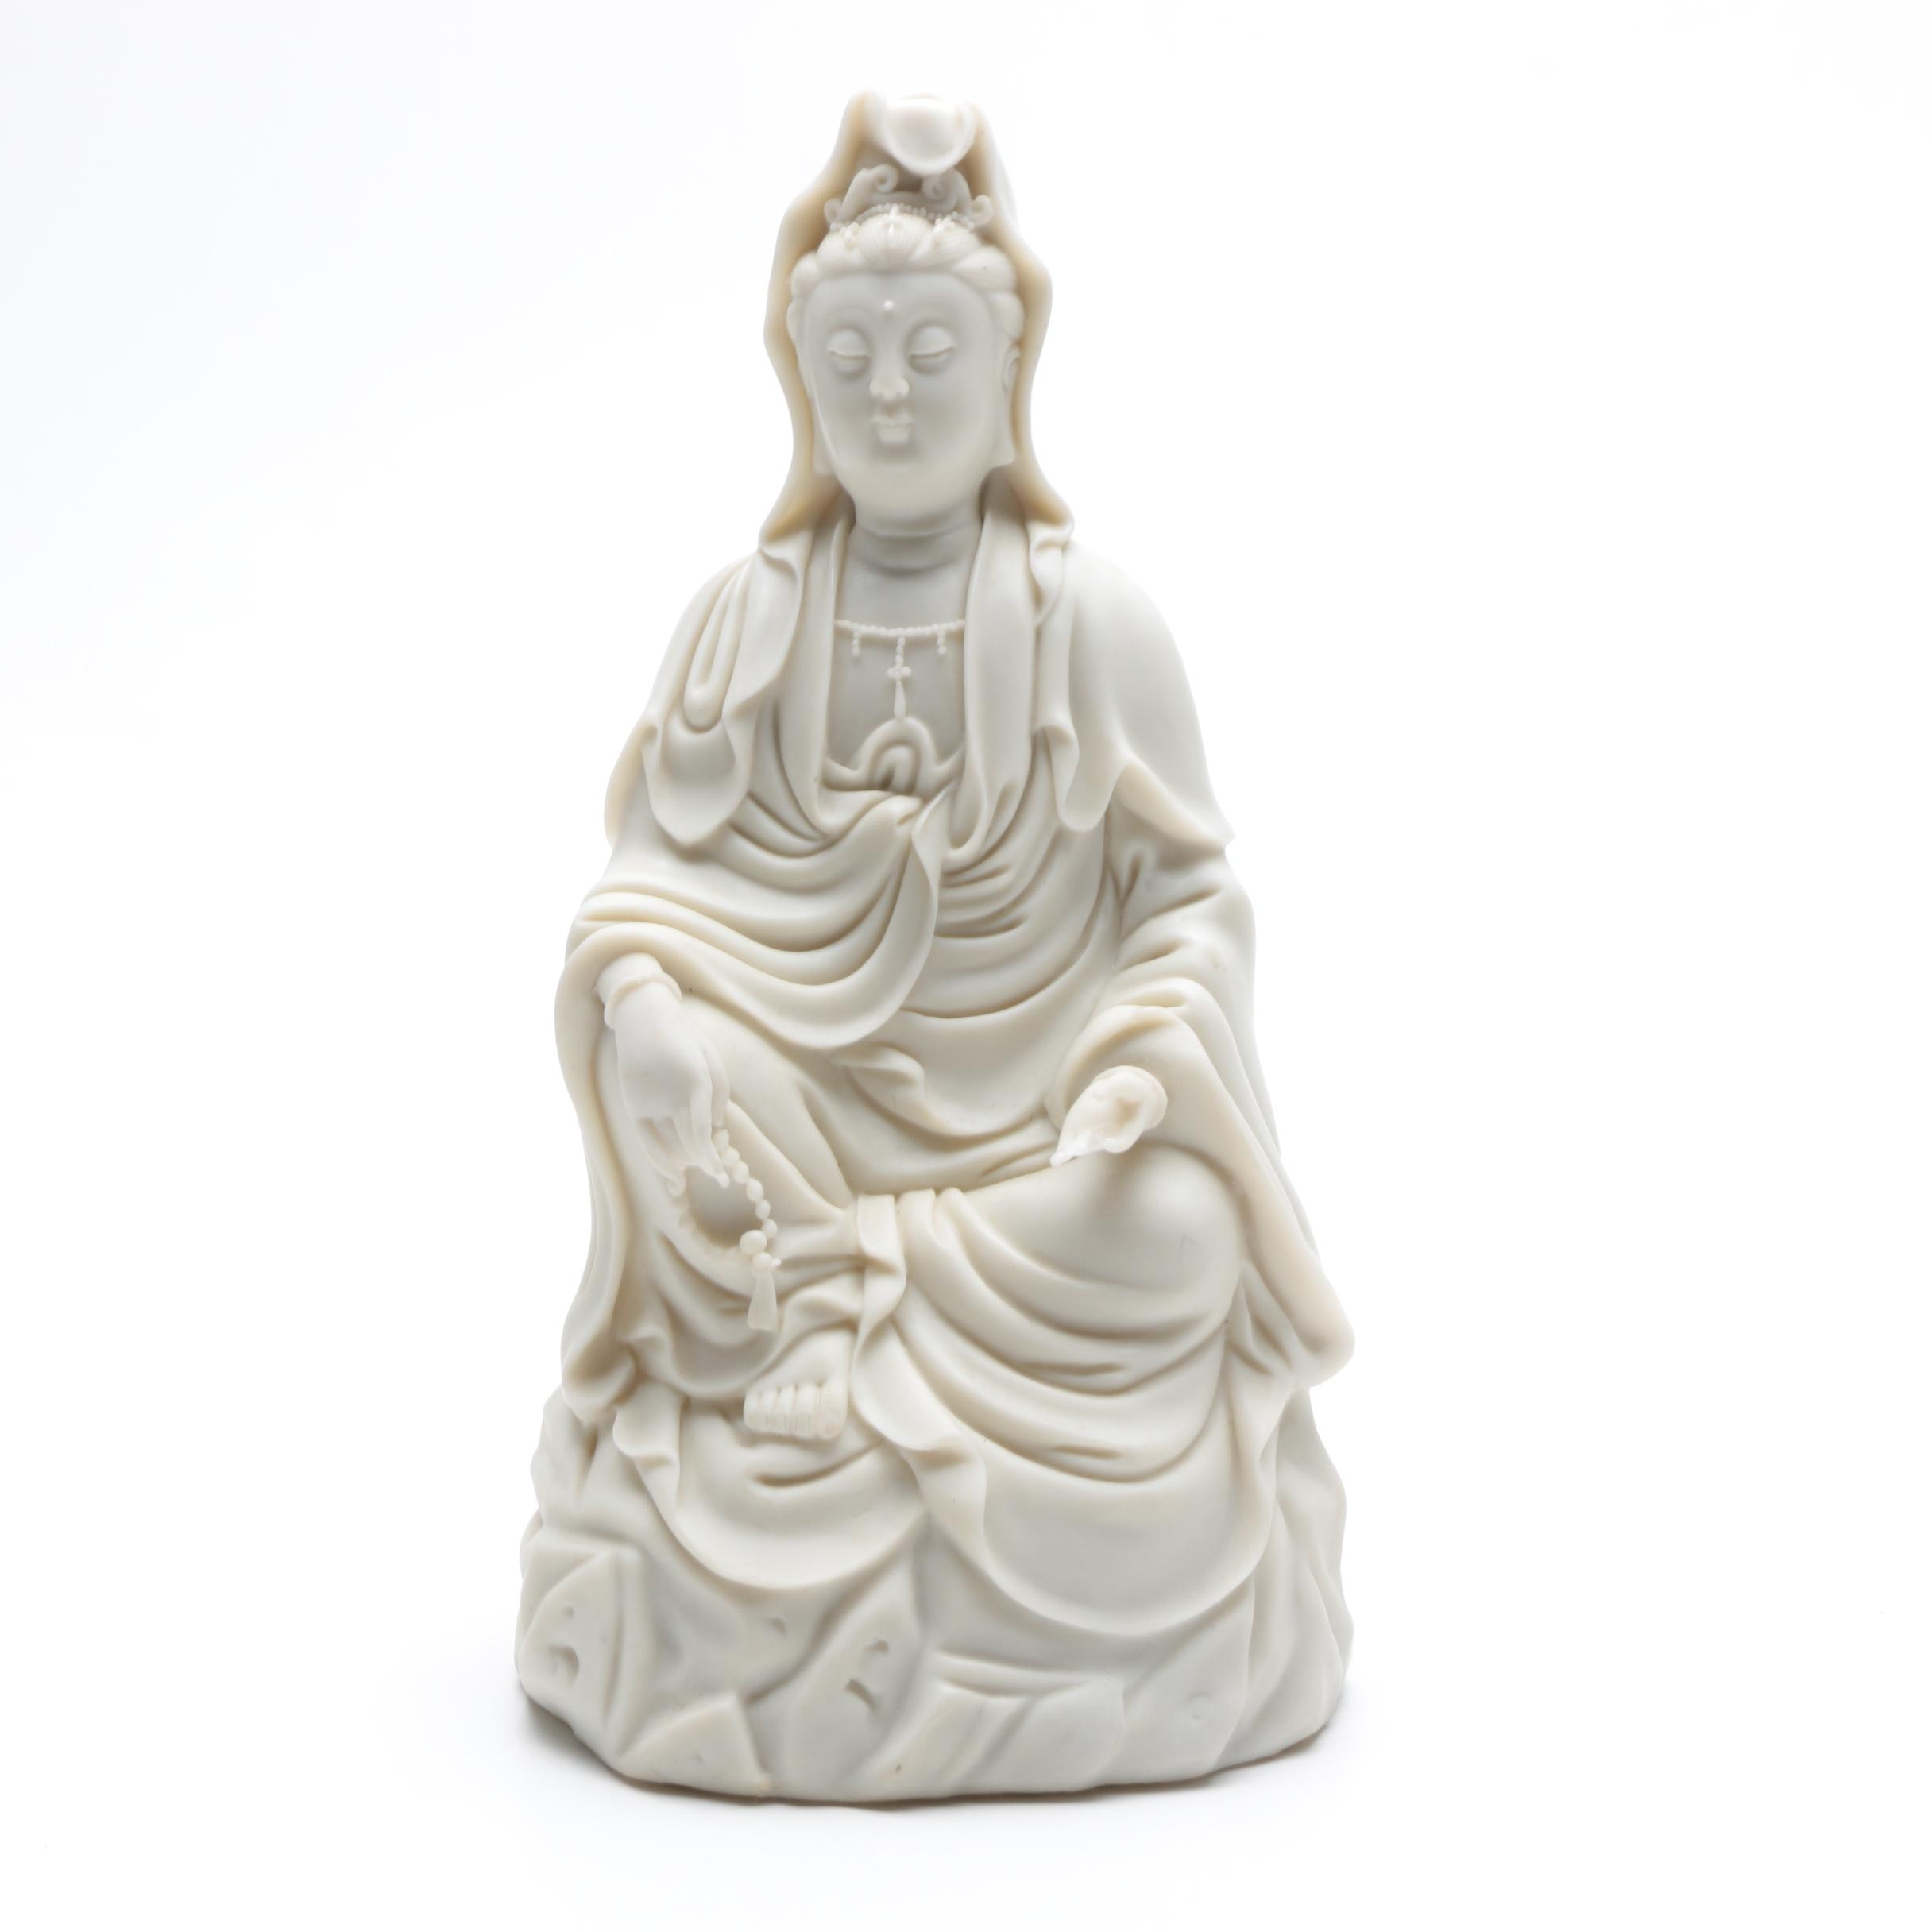 Seated Guanyin Figurine with Beads